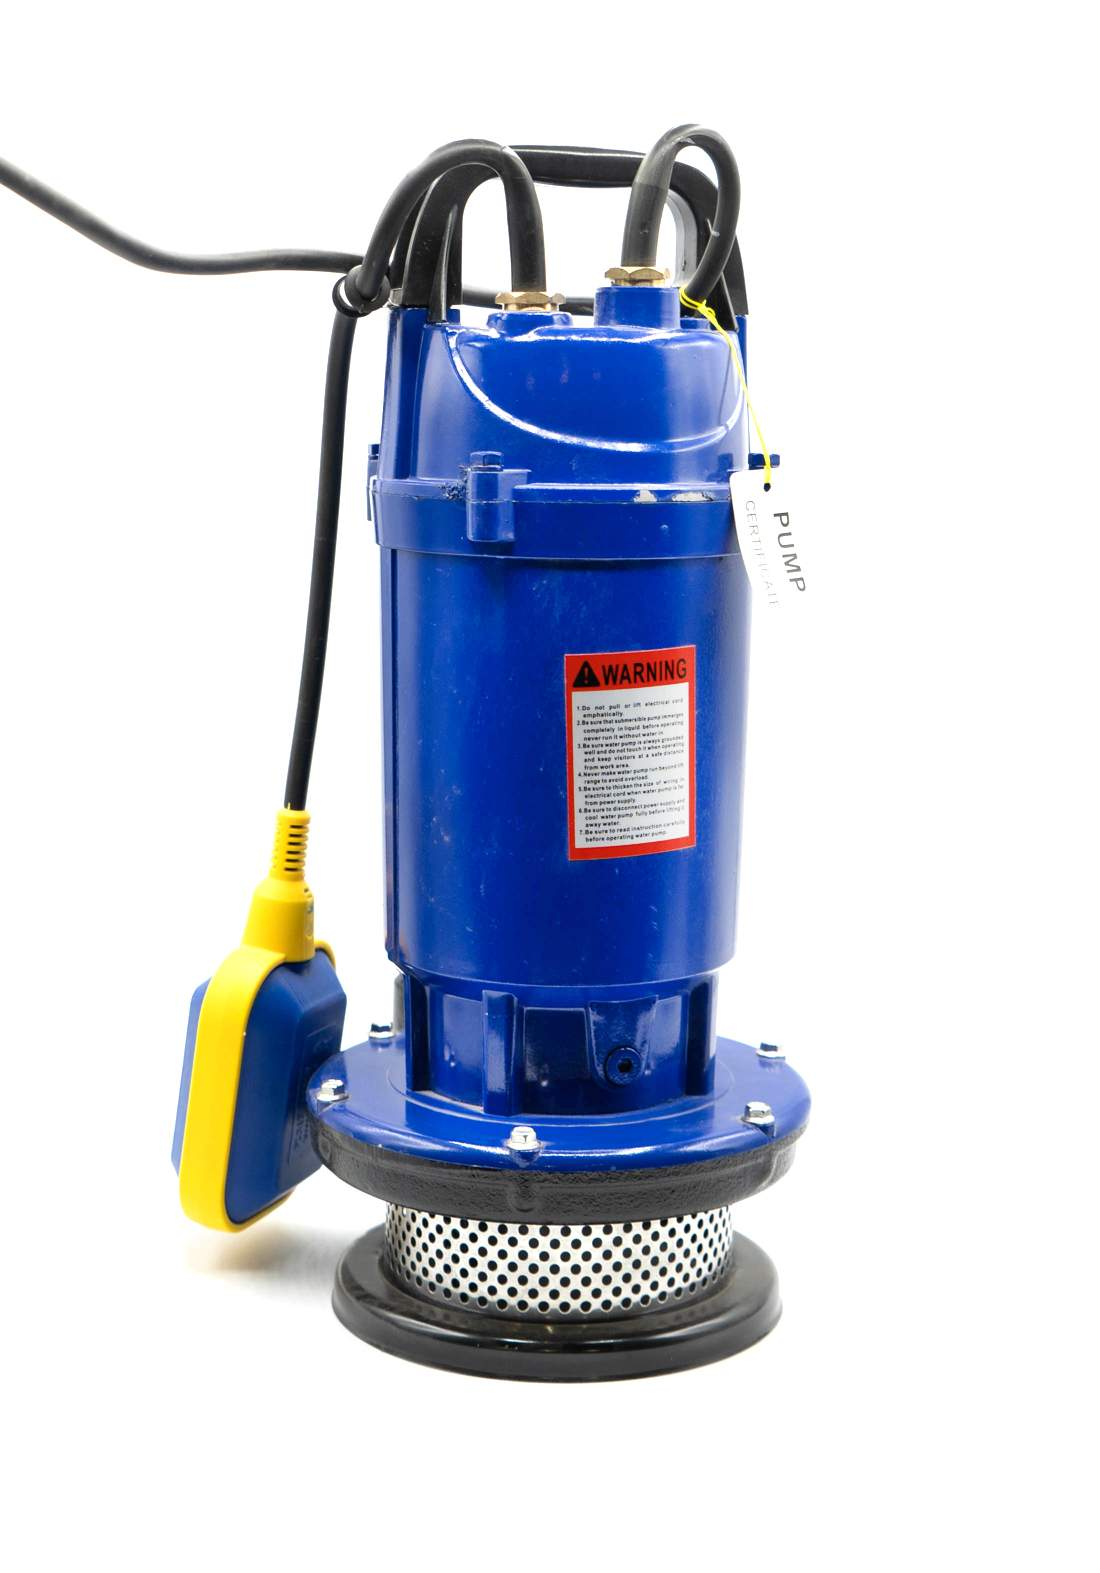 Sali W32050DX Submersible Water Pump QDX 10m³/s ماطور ماء غطاس